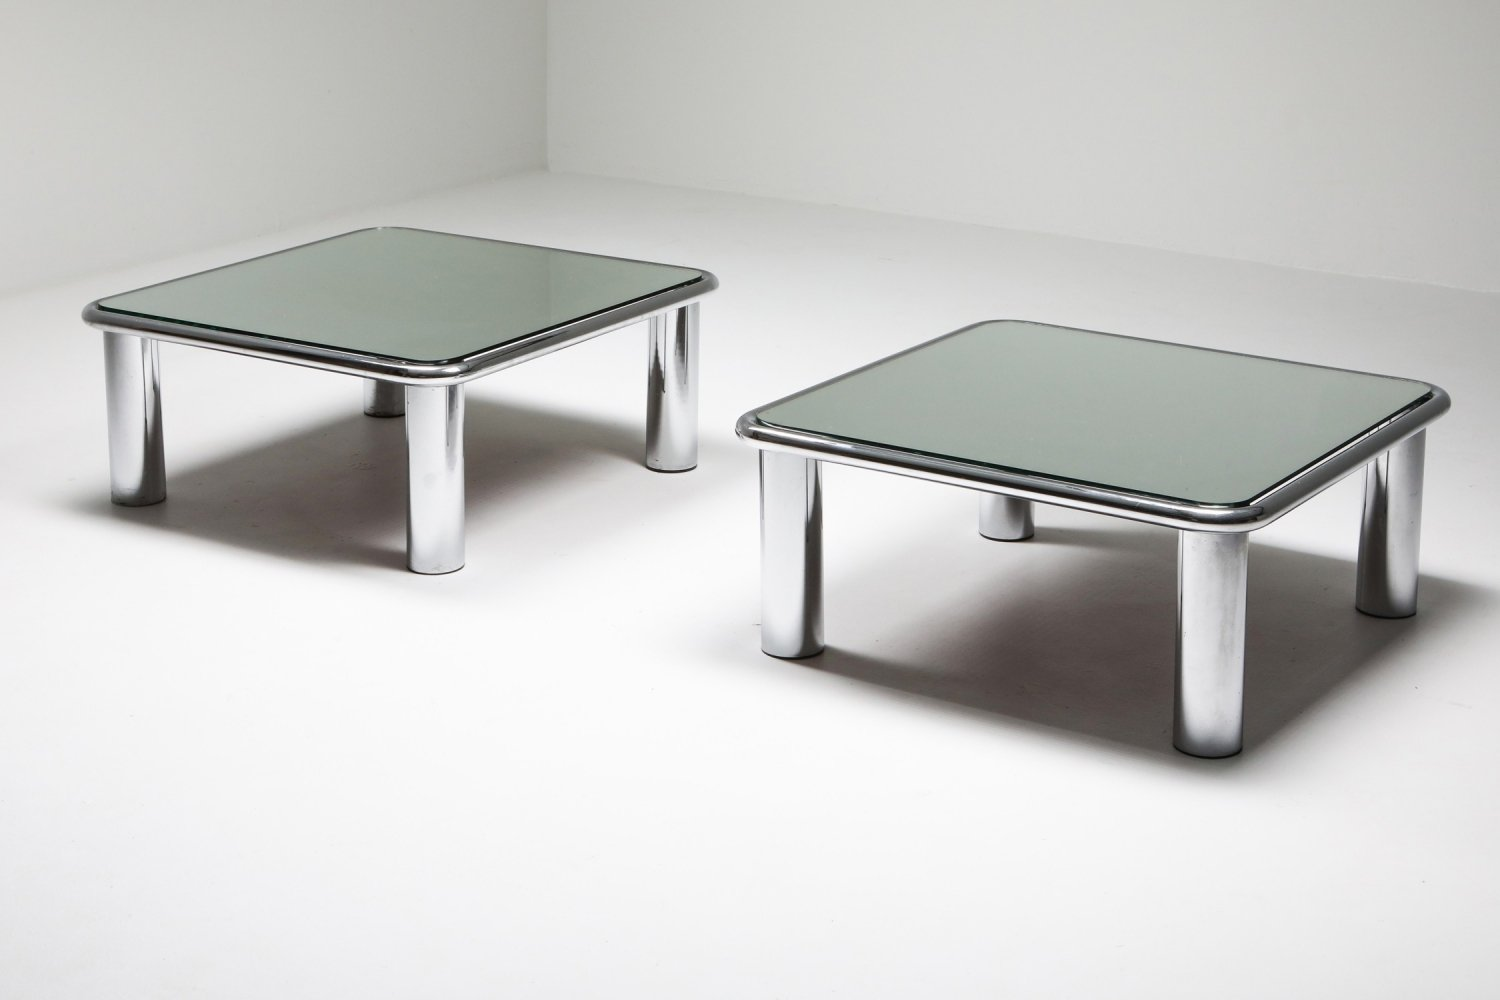 Pair of Mirrored Coffee Tables by Gianfranco Frattini for Cassina, 1960